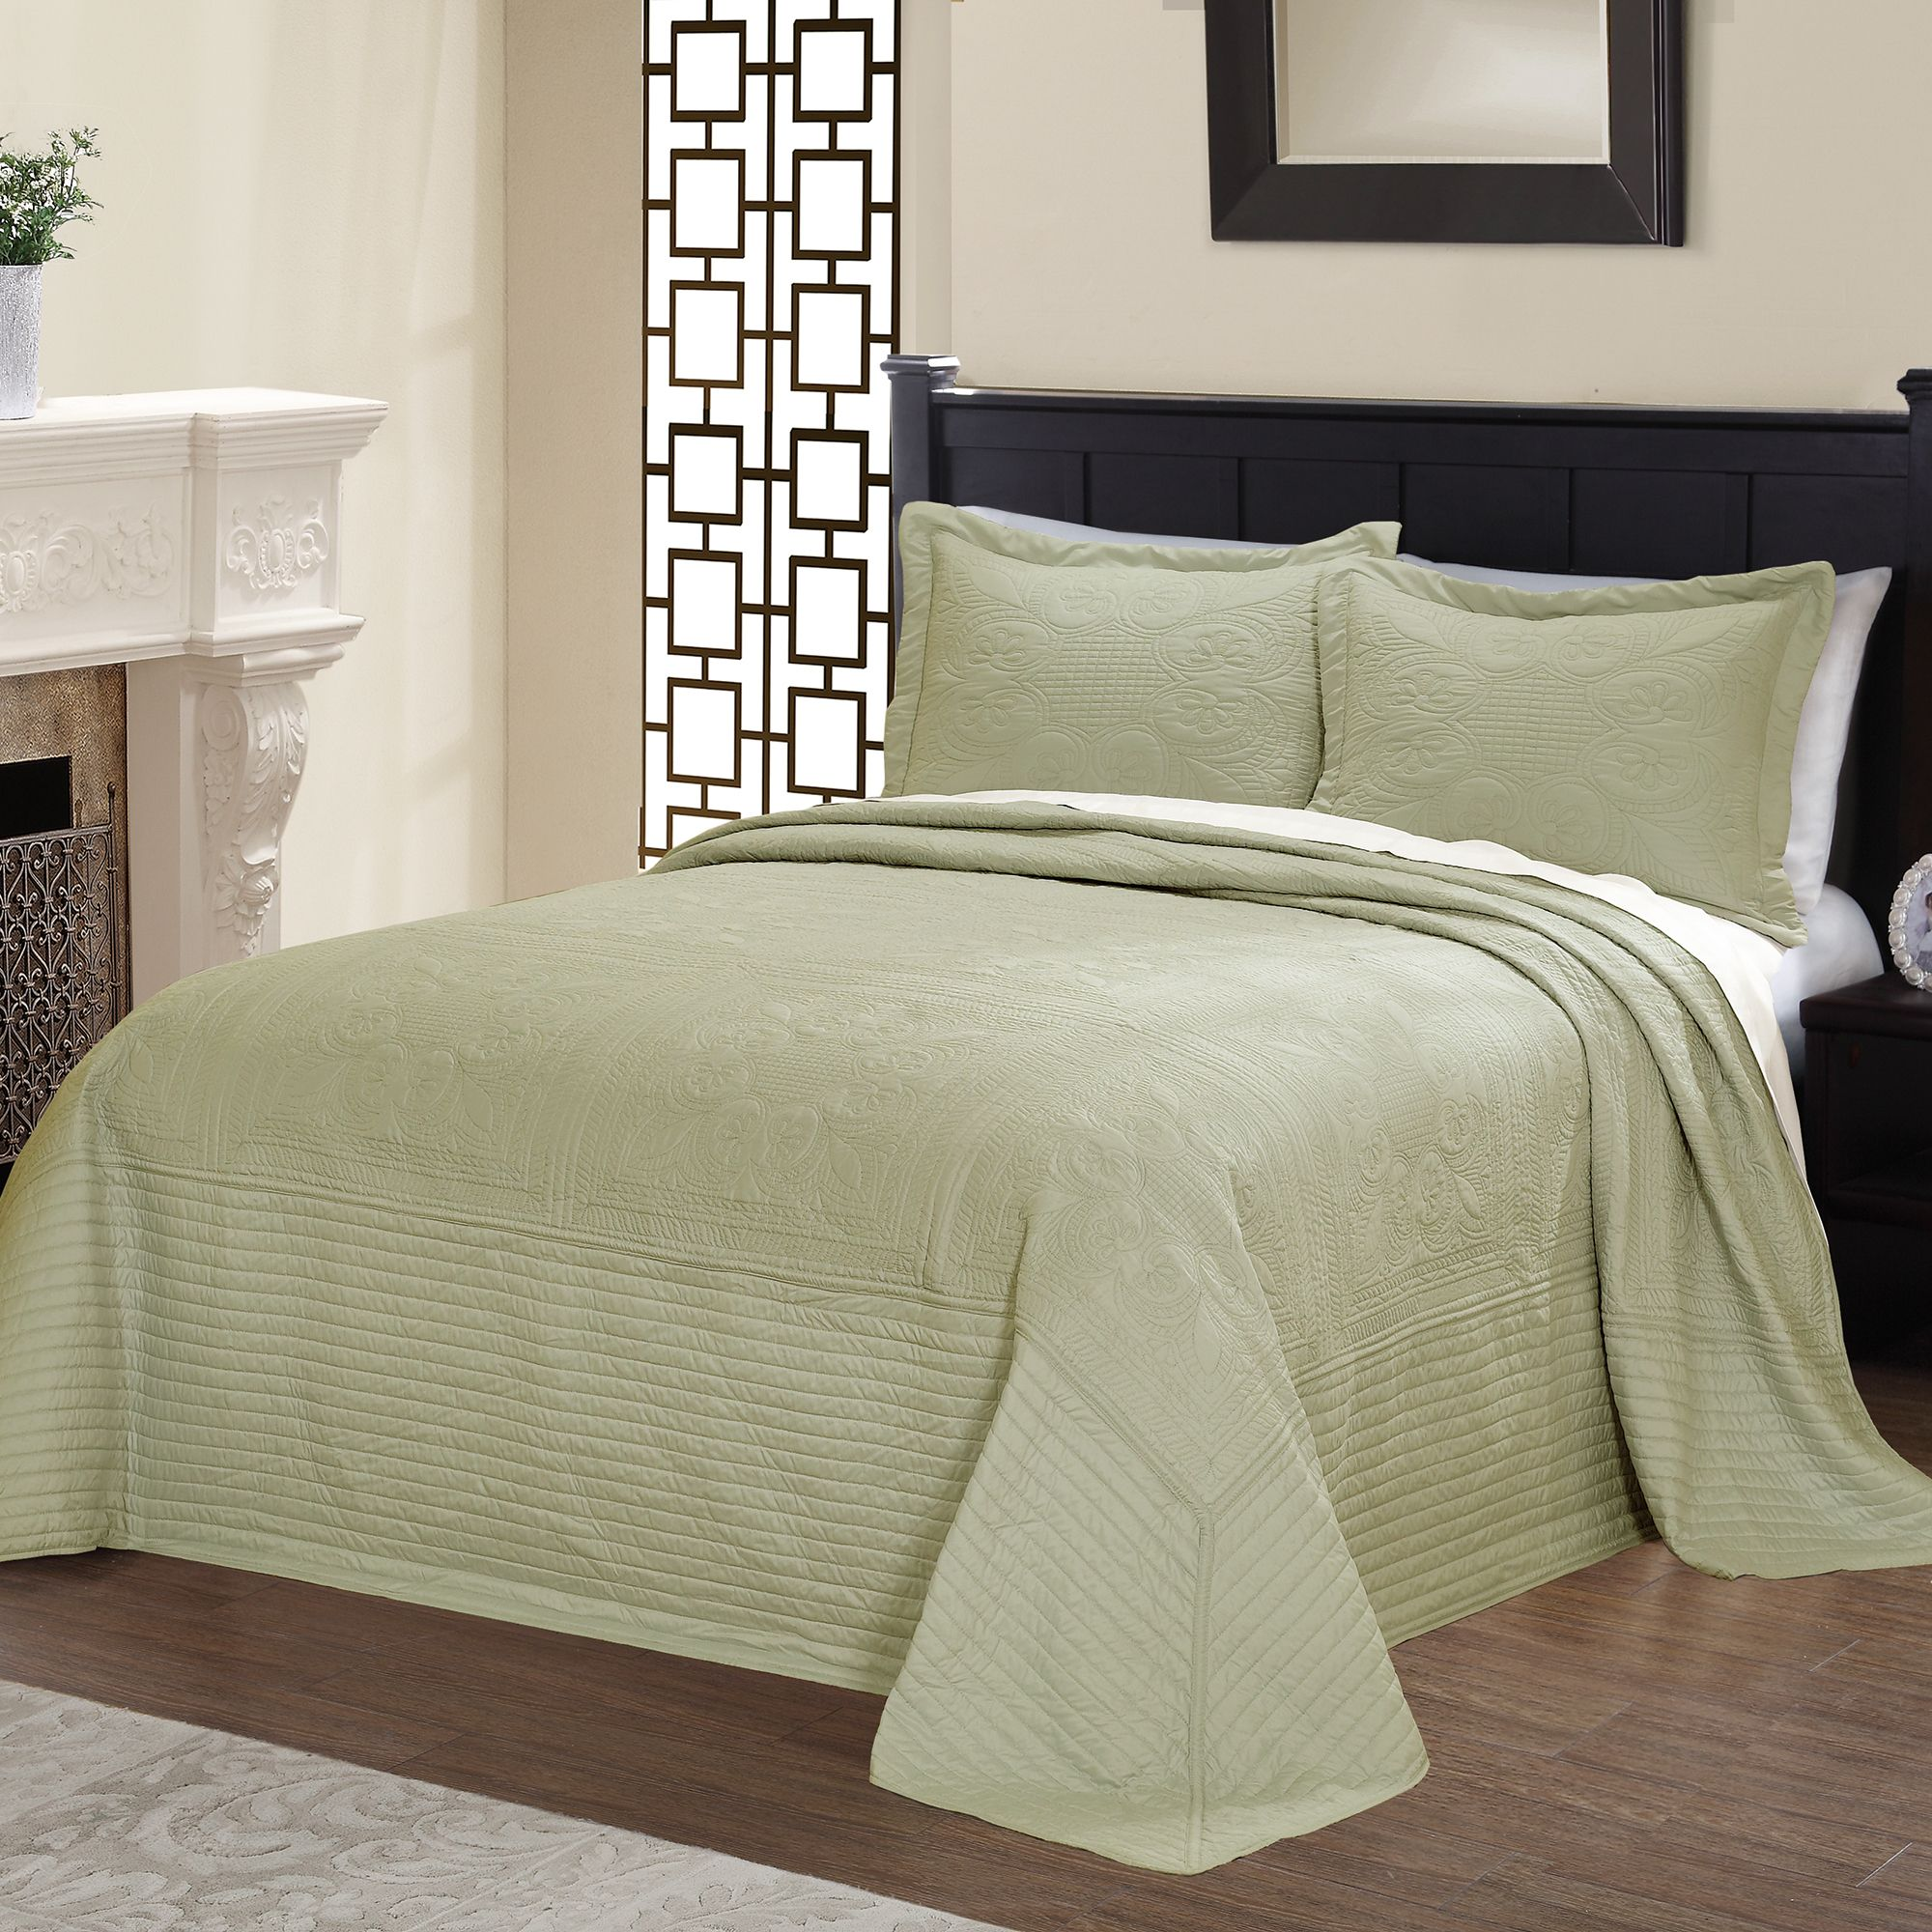 com sea comforter free on seafoam sia set shipping of orders glass product bedding overstock bath amy bed